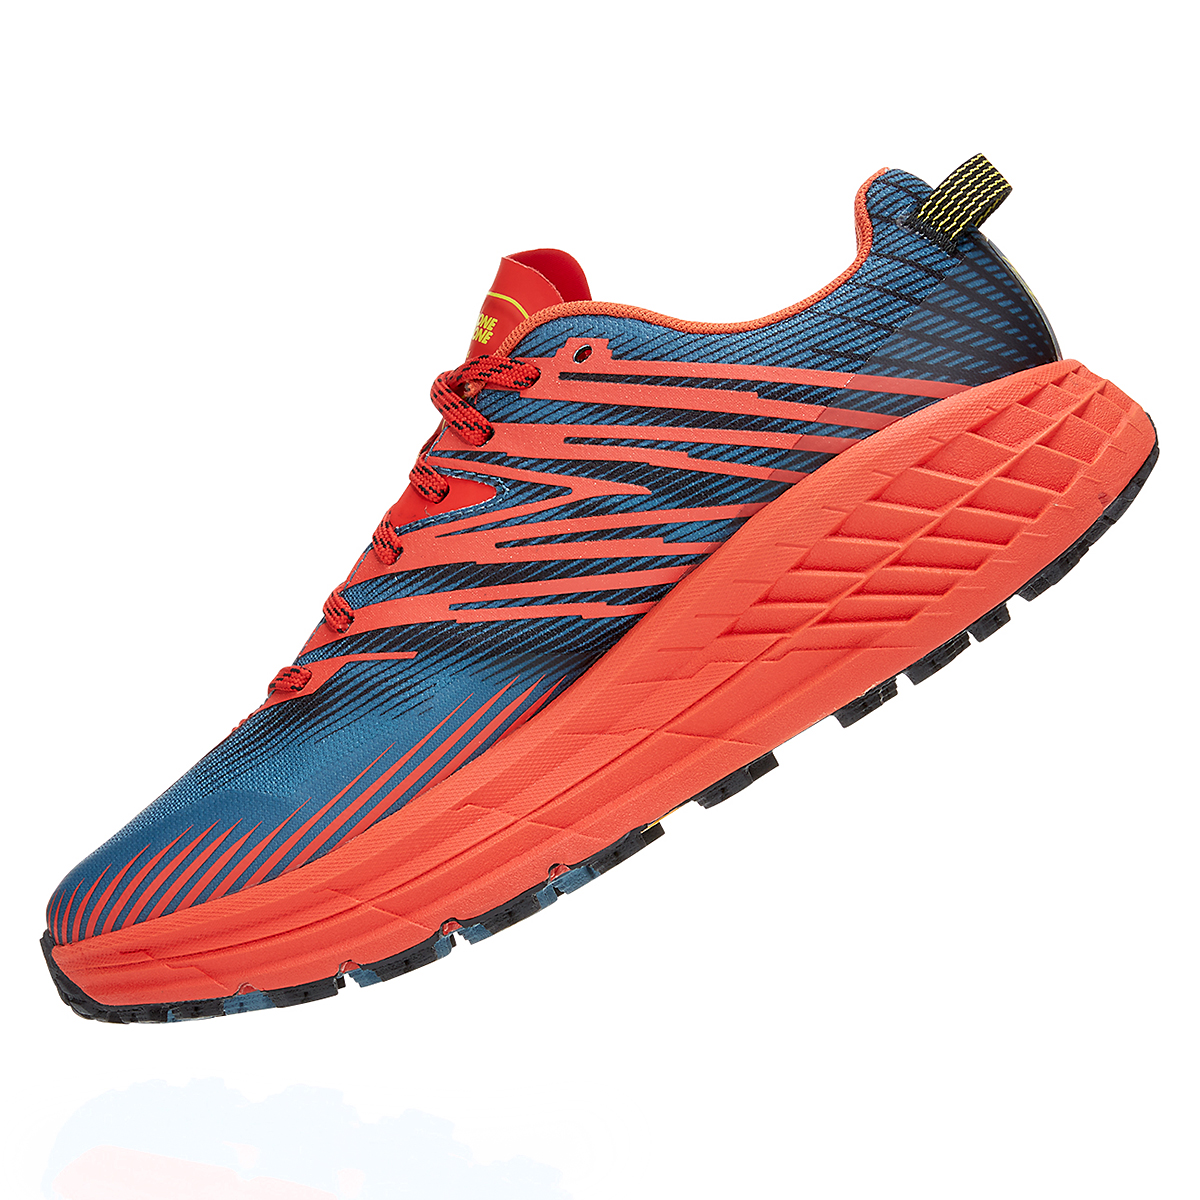 Men's Hoka One One Speedgoat 4 Trail Running Shoe - Color: Fiesta/Provincial Blue - Size: 7 - Width: Regular, Fiesta/Provincial Blue, large, image 2